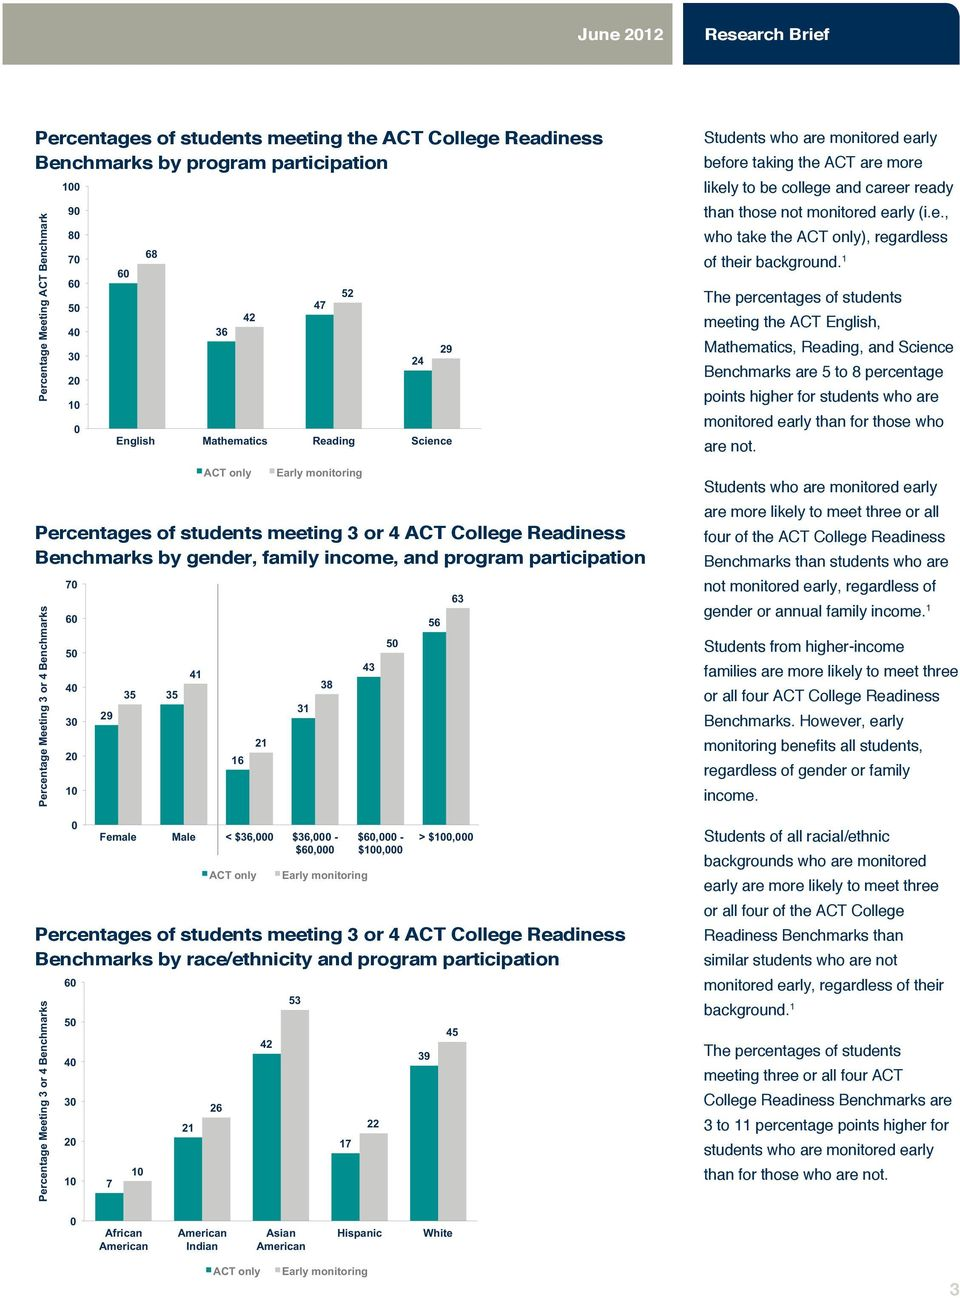 Benchmarks Percentages of students meeting 3 or 4 ACT College Readiness Benchmarks by race/ethnicity and program participation Percentage Meeting 3 or 4 Benchmarks 7 3 3 29 7 35 35 21 41 26 16 21 42